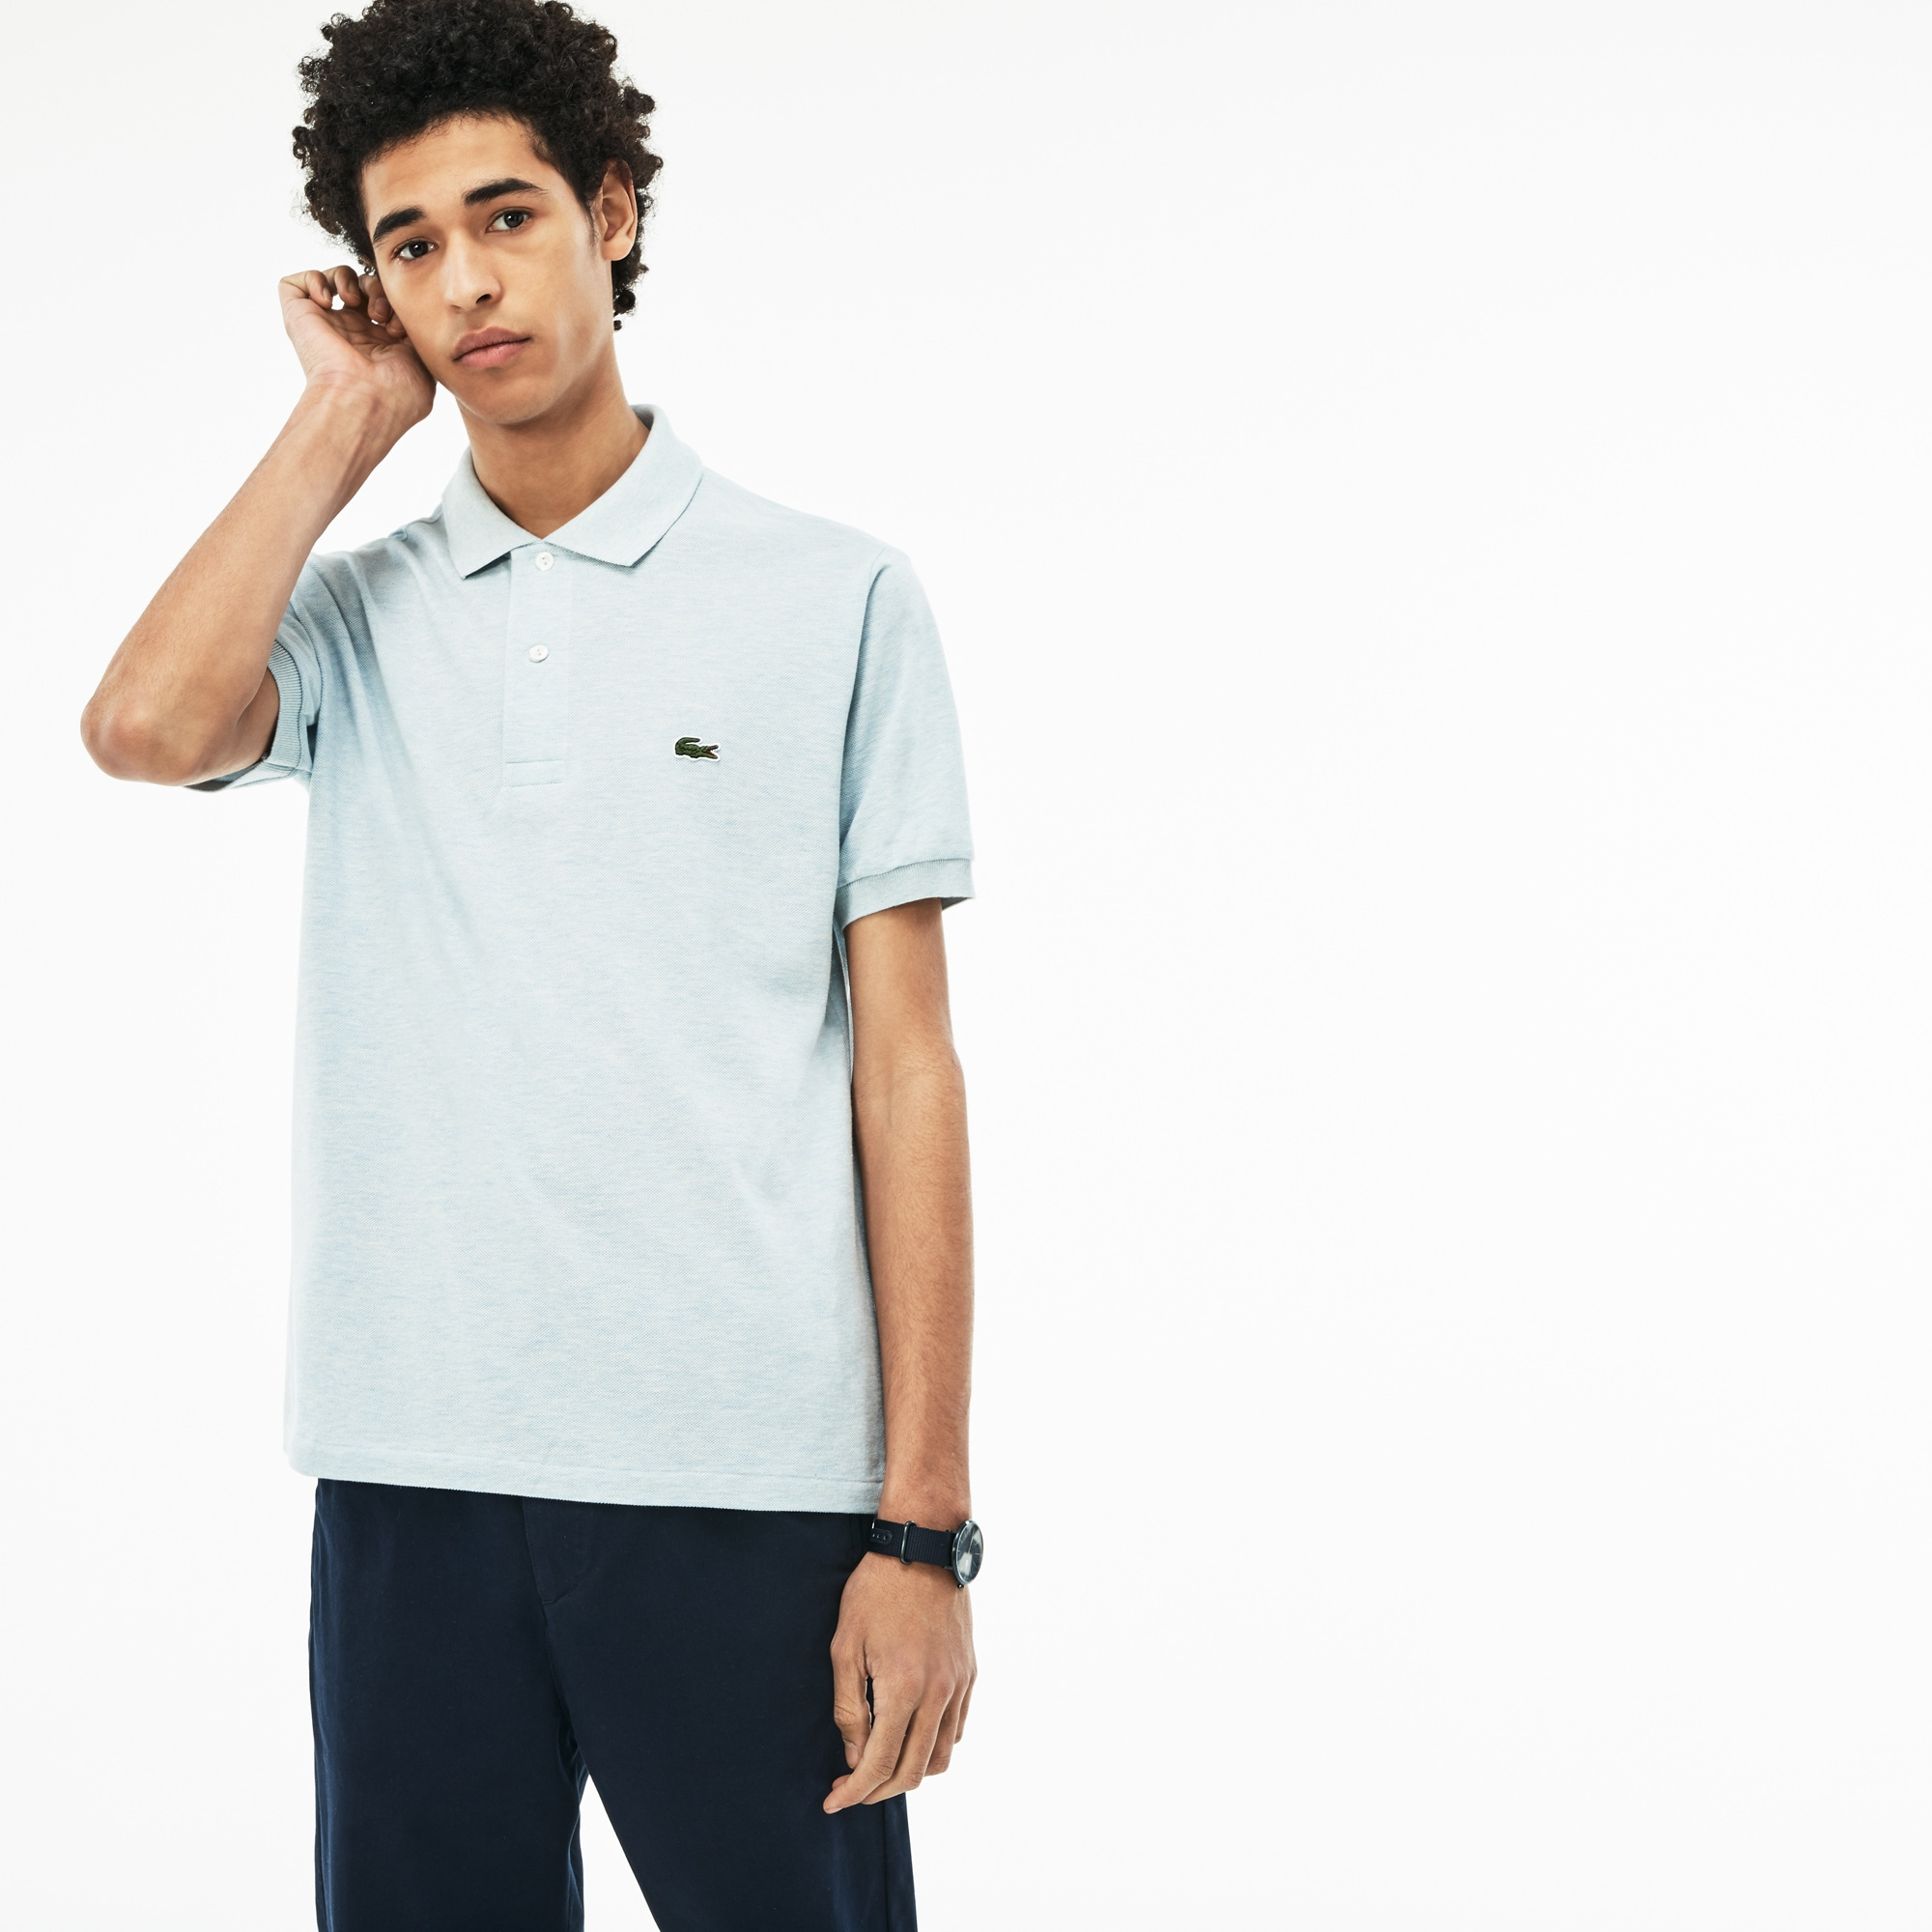 Marl Lacoste L.12.12 Polo Shirt